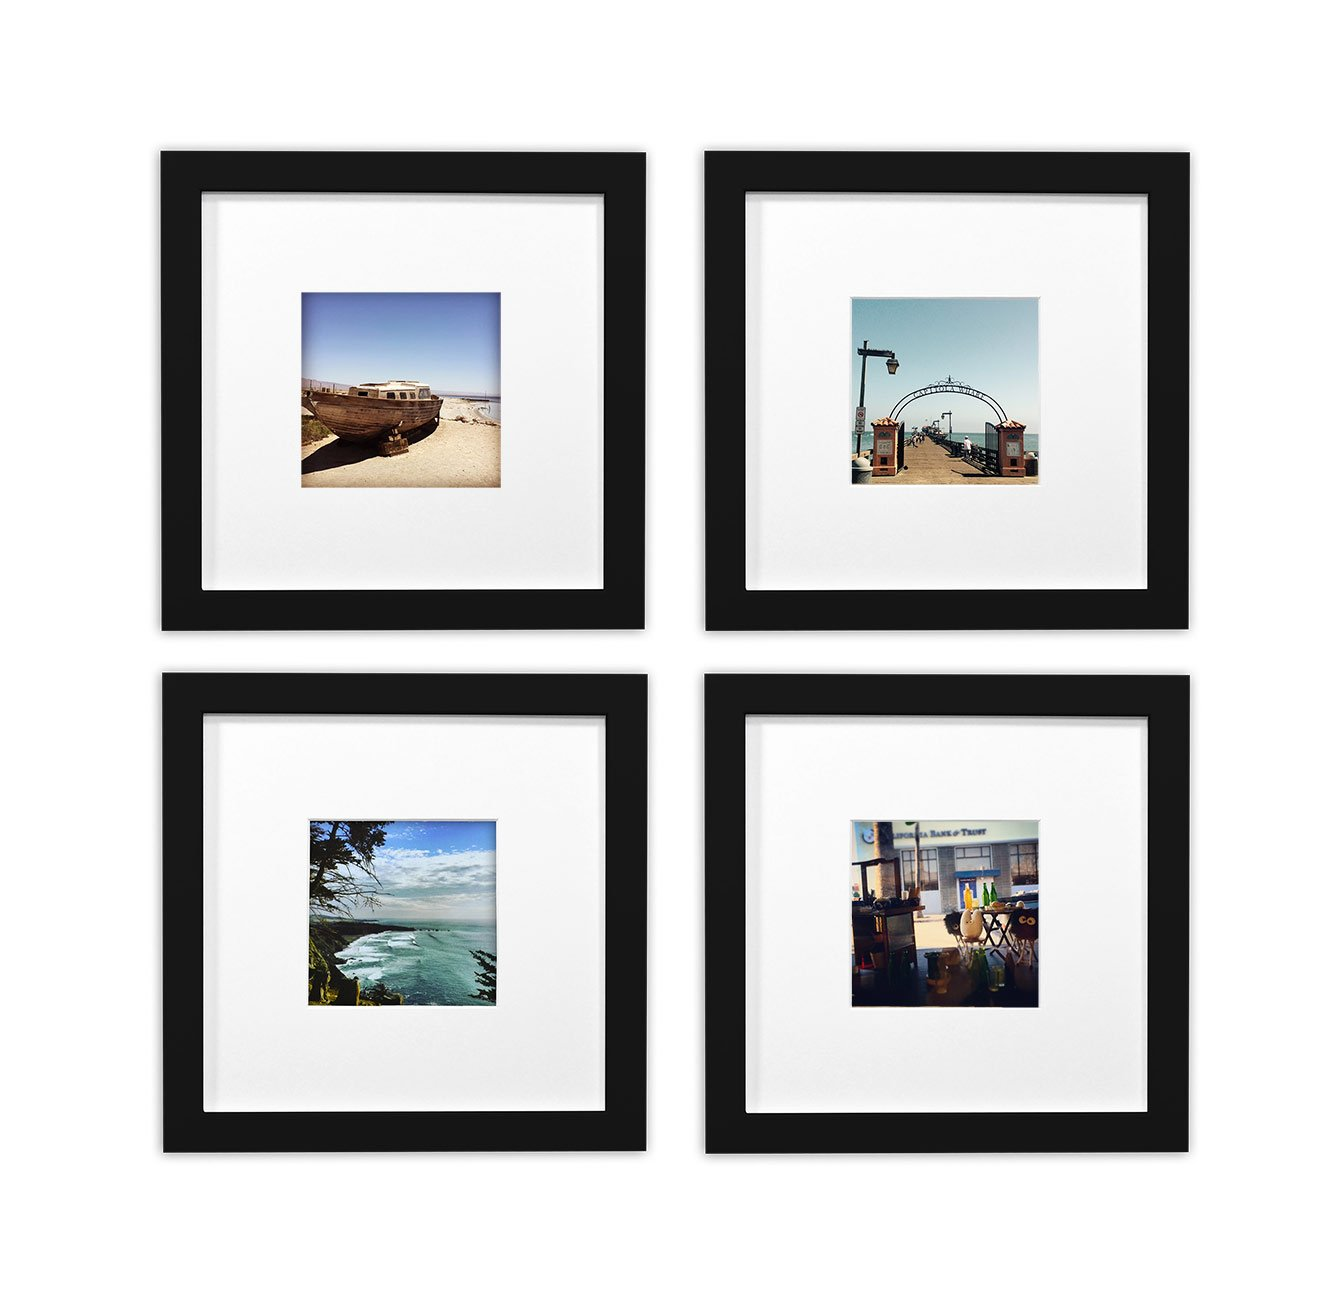 Golden State Art, Smartphone Instagram Frames Collection,Set of 4, 8x8-inch Square Photo Wood Frames with White Photo Mat & Real Glass for 4x4 Photo,Black by Golden State Art